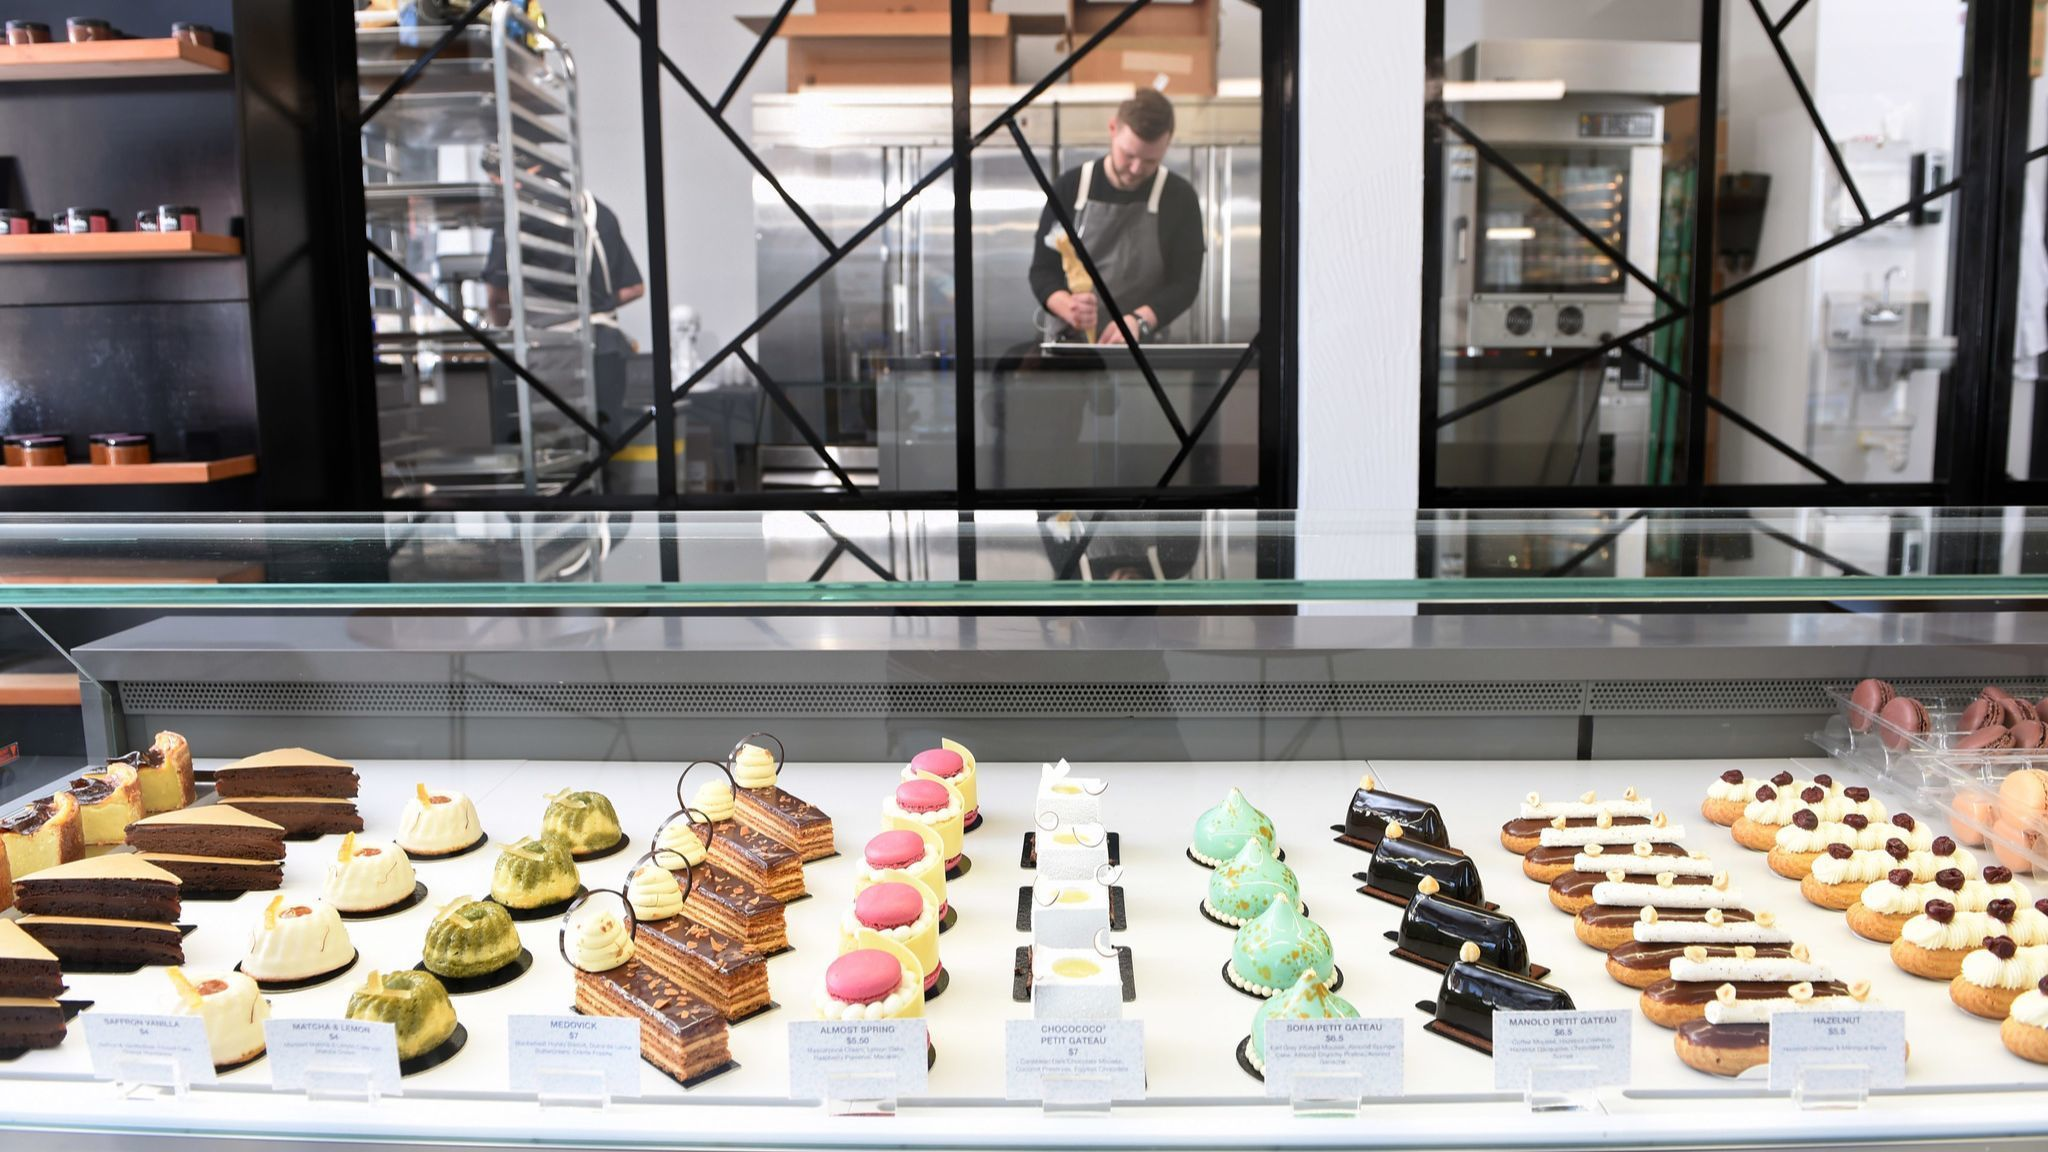 Dane Thibodeaux fills macarons in the kitchen of his pastry studio, located at 200